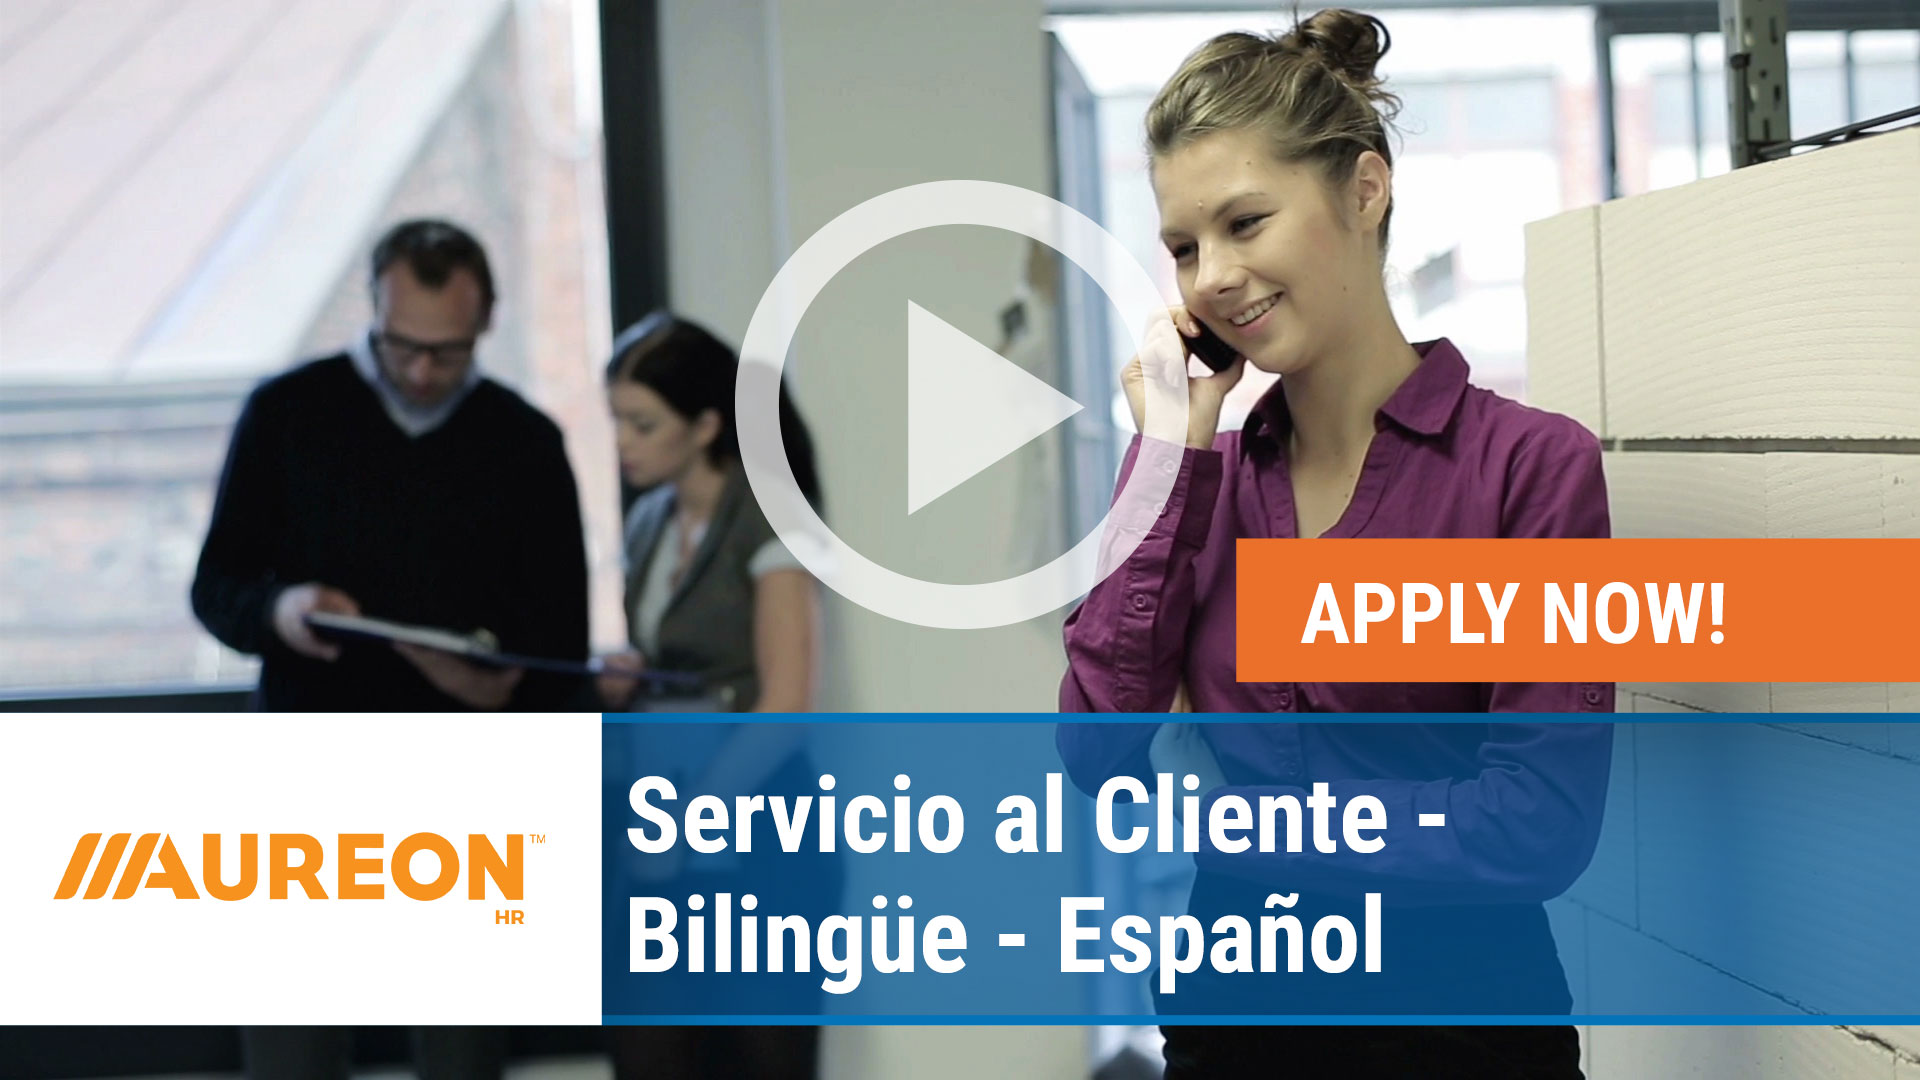 Watch our careers video for available job opening Servicio al Cliente - Bilingüe - Español in Des Moines, Iowa